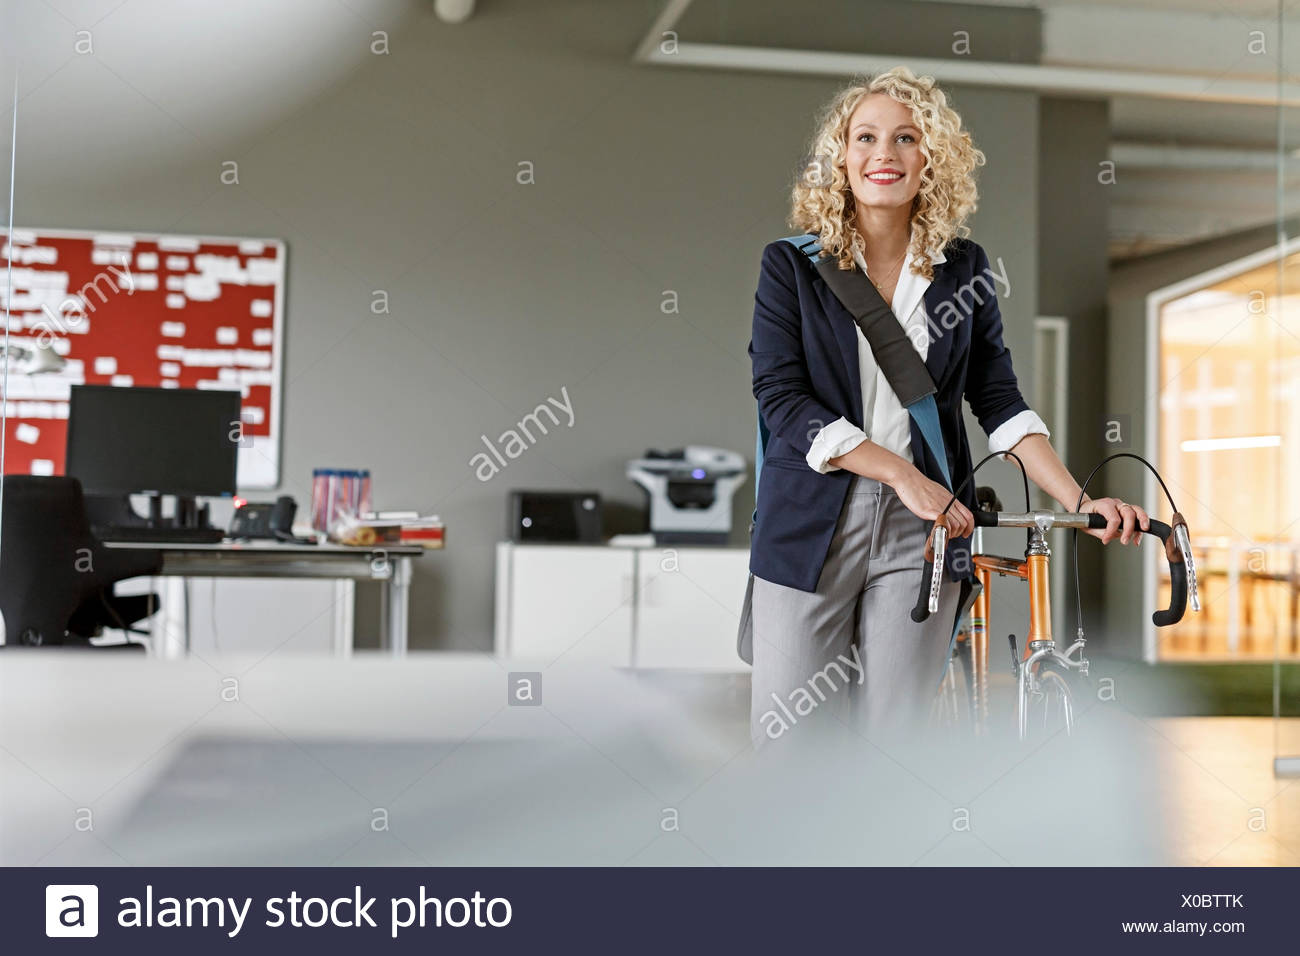 Smiling woman with bicycle in office Photo Stock